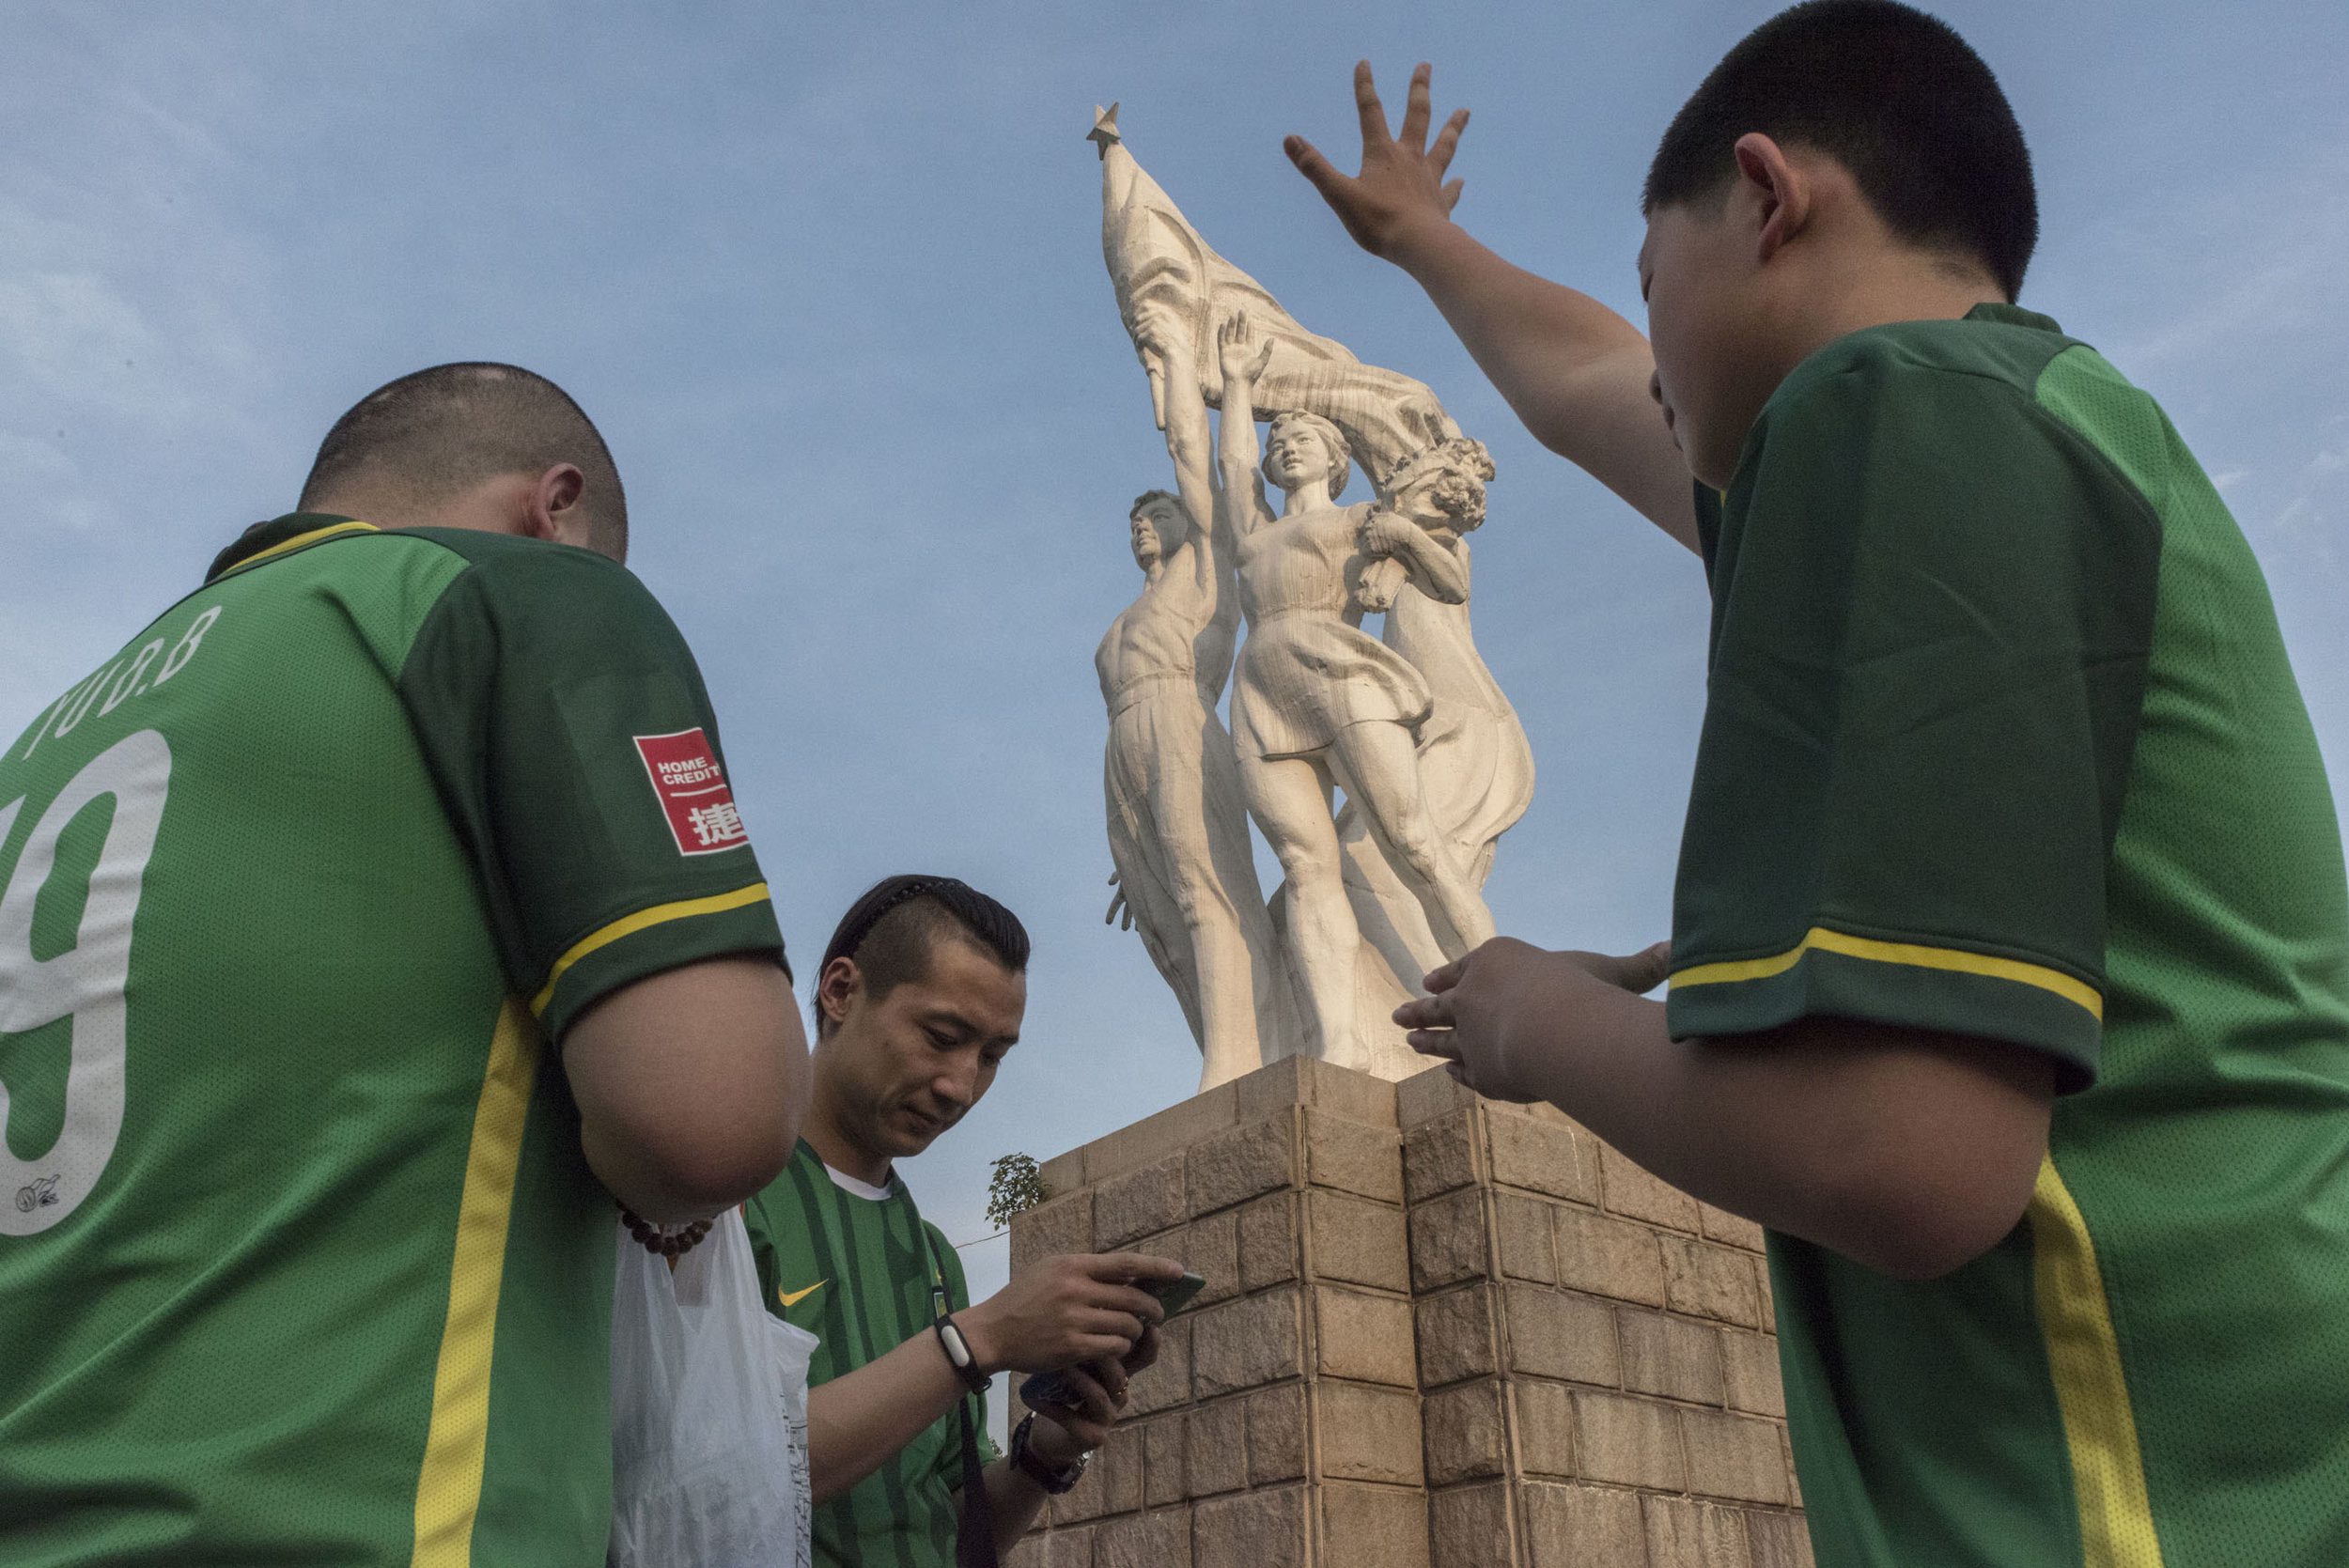 Outside the Workers stadium in Beijing, supporters of the Beijing club Guoan waiting for friends by a statue representing workers.